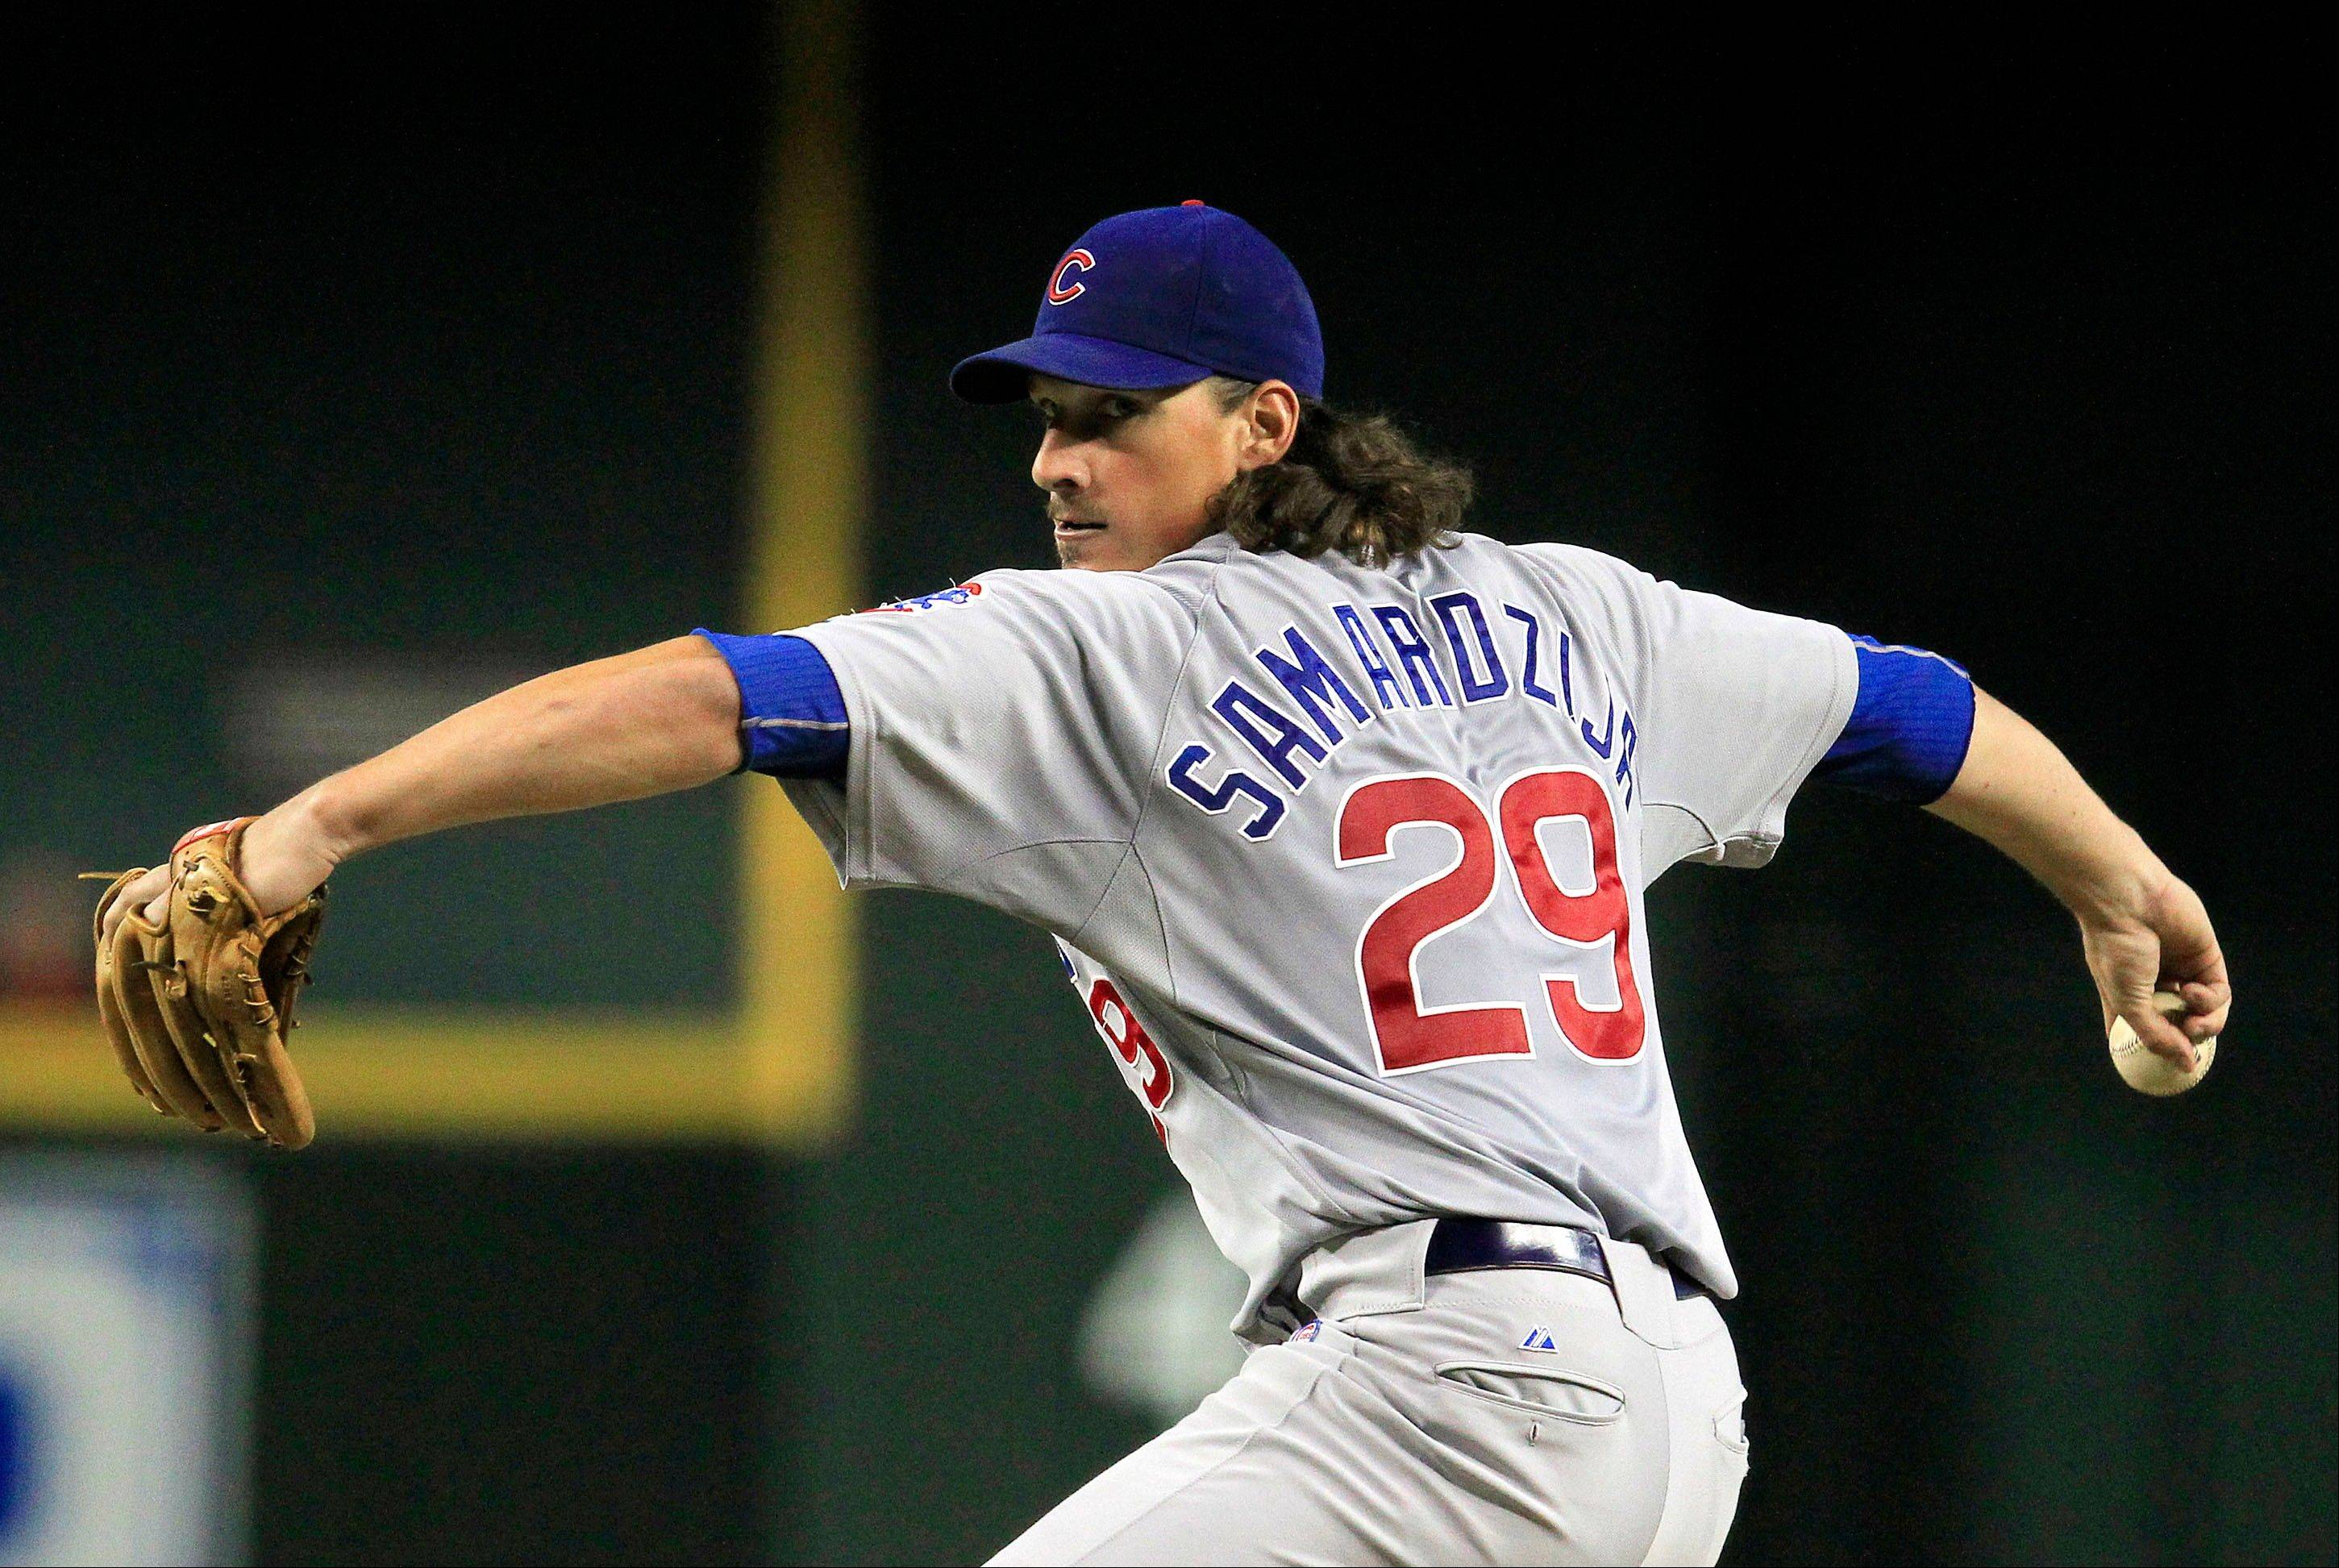 Cubs starter Jeff Samardzija didn't have his best outing. He gave up a 2-run homer to Jason Kubel in the bottom of the fourth. Miguel Montero added a 2-run triple in the sixth, making the score 5-1 and knocking out Samardzija as the Cubs fell 6-1to the Arizona Diamondbacks.